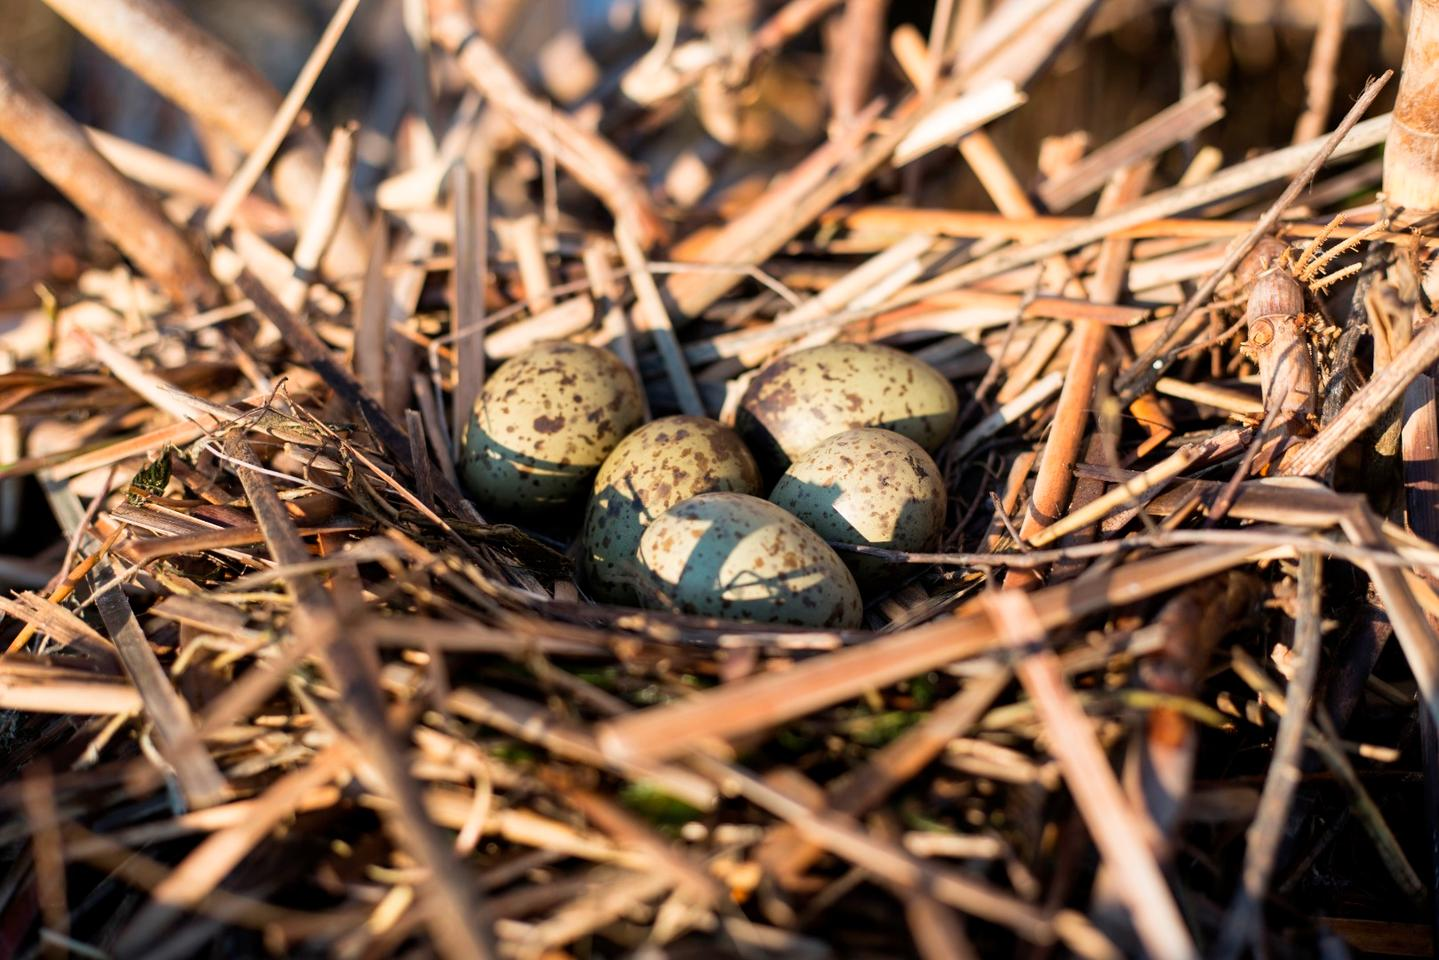 Research suggests that gull embryos can communicate important environmental information to each other before hatching